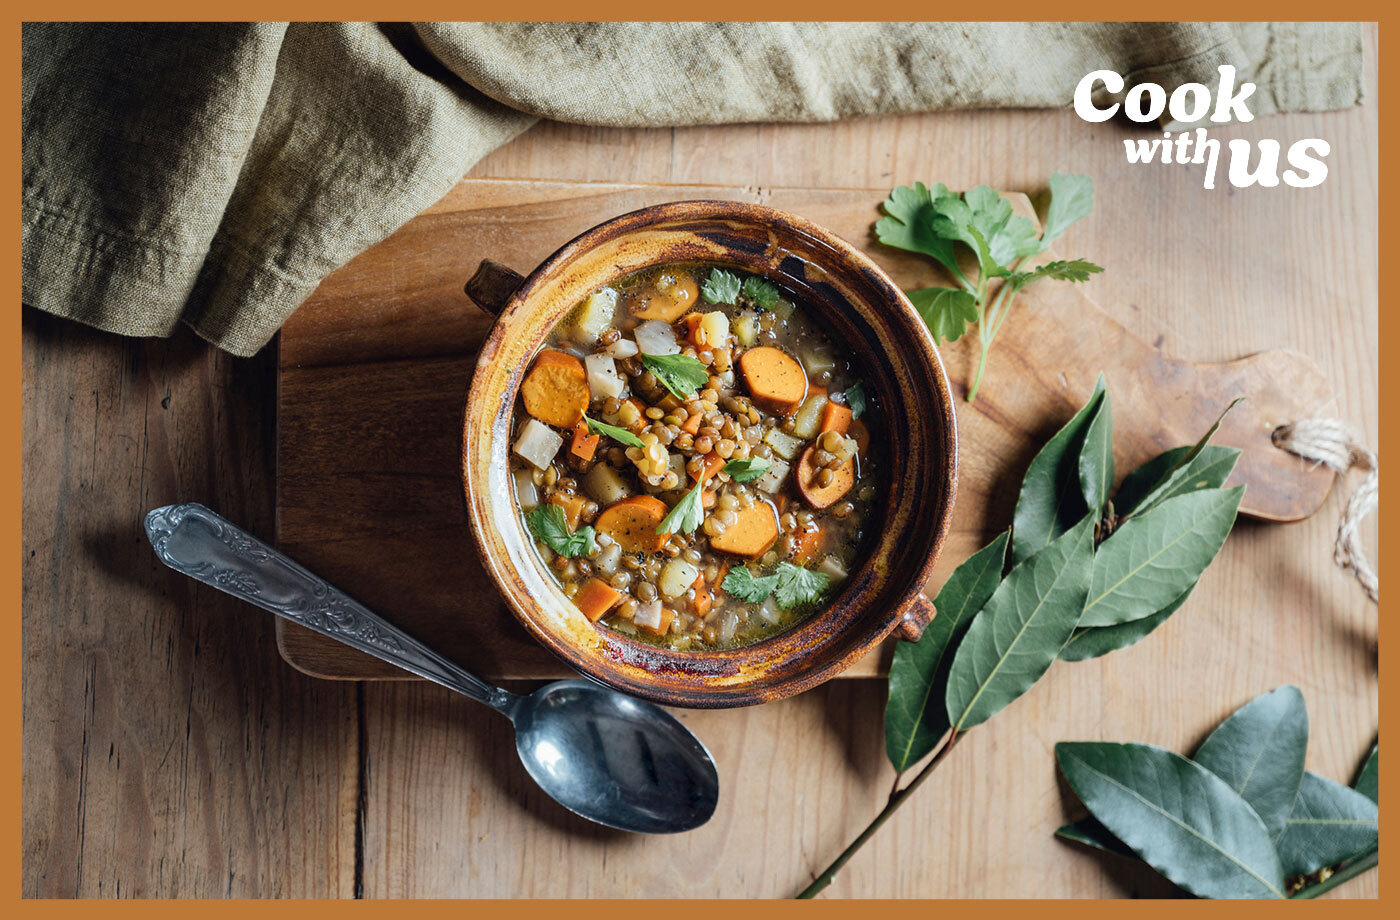 Thumbnail for Easy Lentil Recipes That Add Quick Fiber and Protein to a Week's Worth of Healthy Dinners